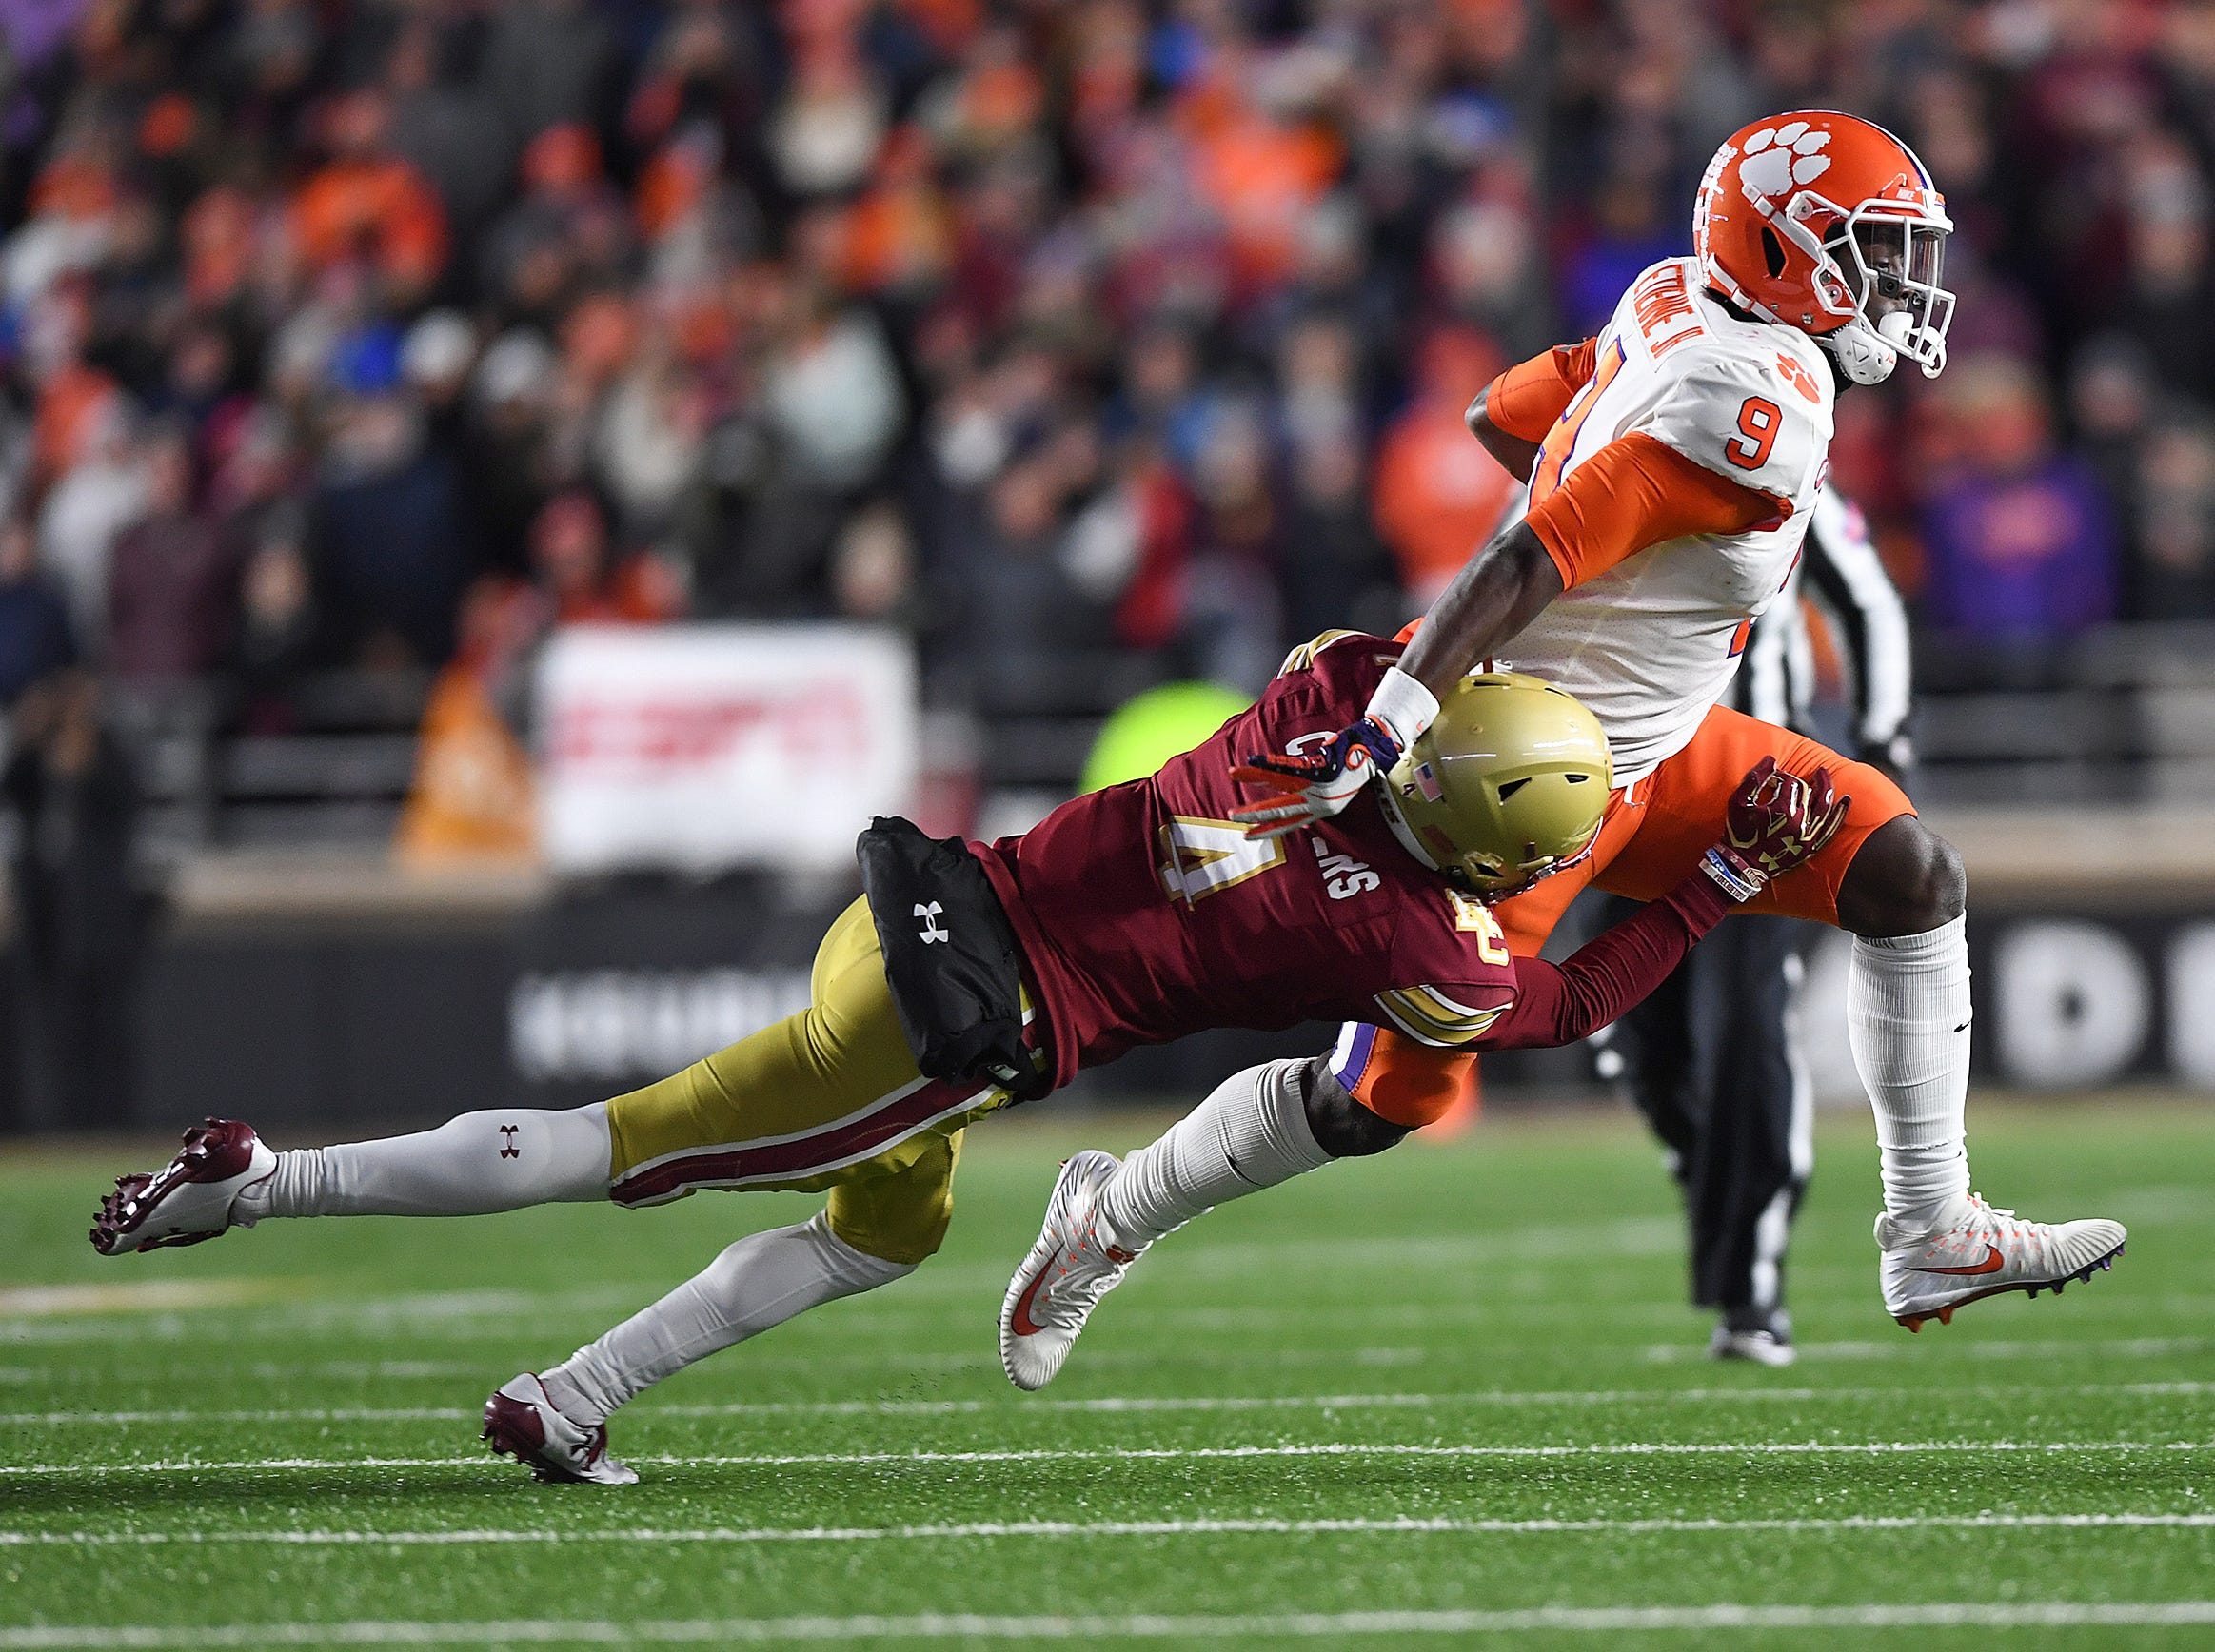 Boston College defender Hamp Cheevers (4) tries to bring down Clemson running back Travis Etienne (9) during the 2nd quarter at Boston College's Alumni Stadium in Chestnut Hill, MA. Saturday, November 10, 2018.